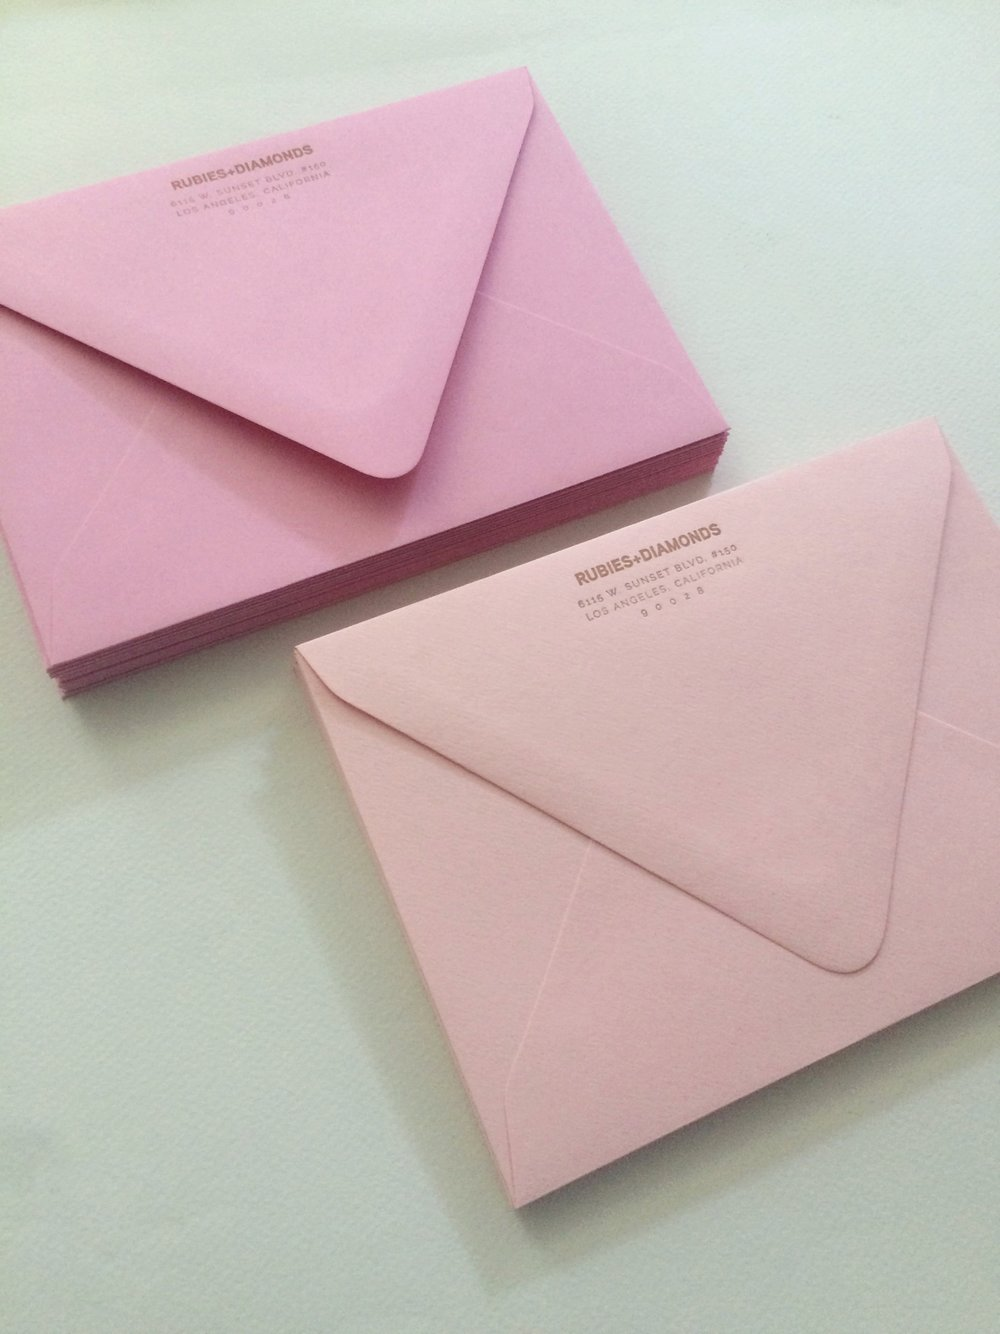 rubies and diamonds envelopes